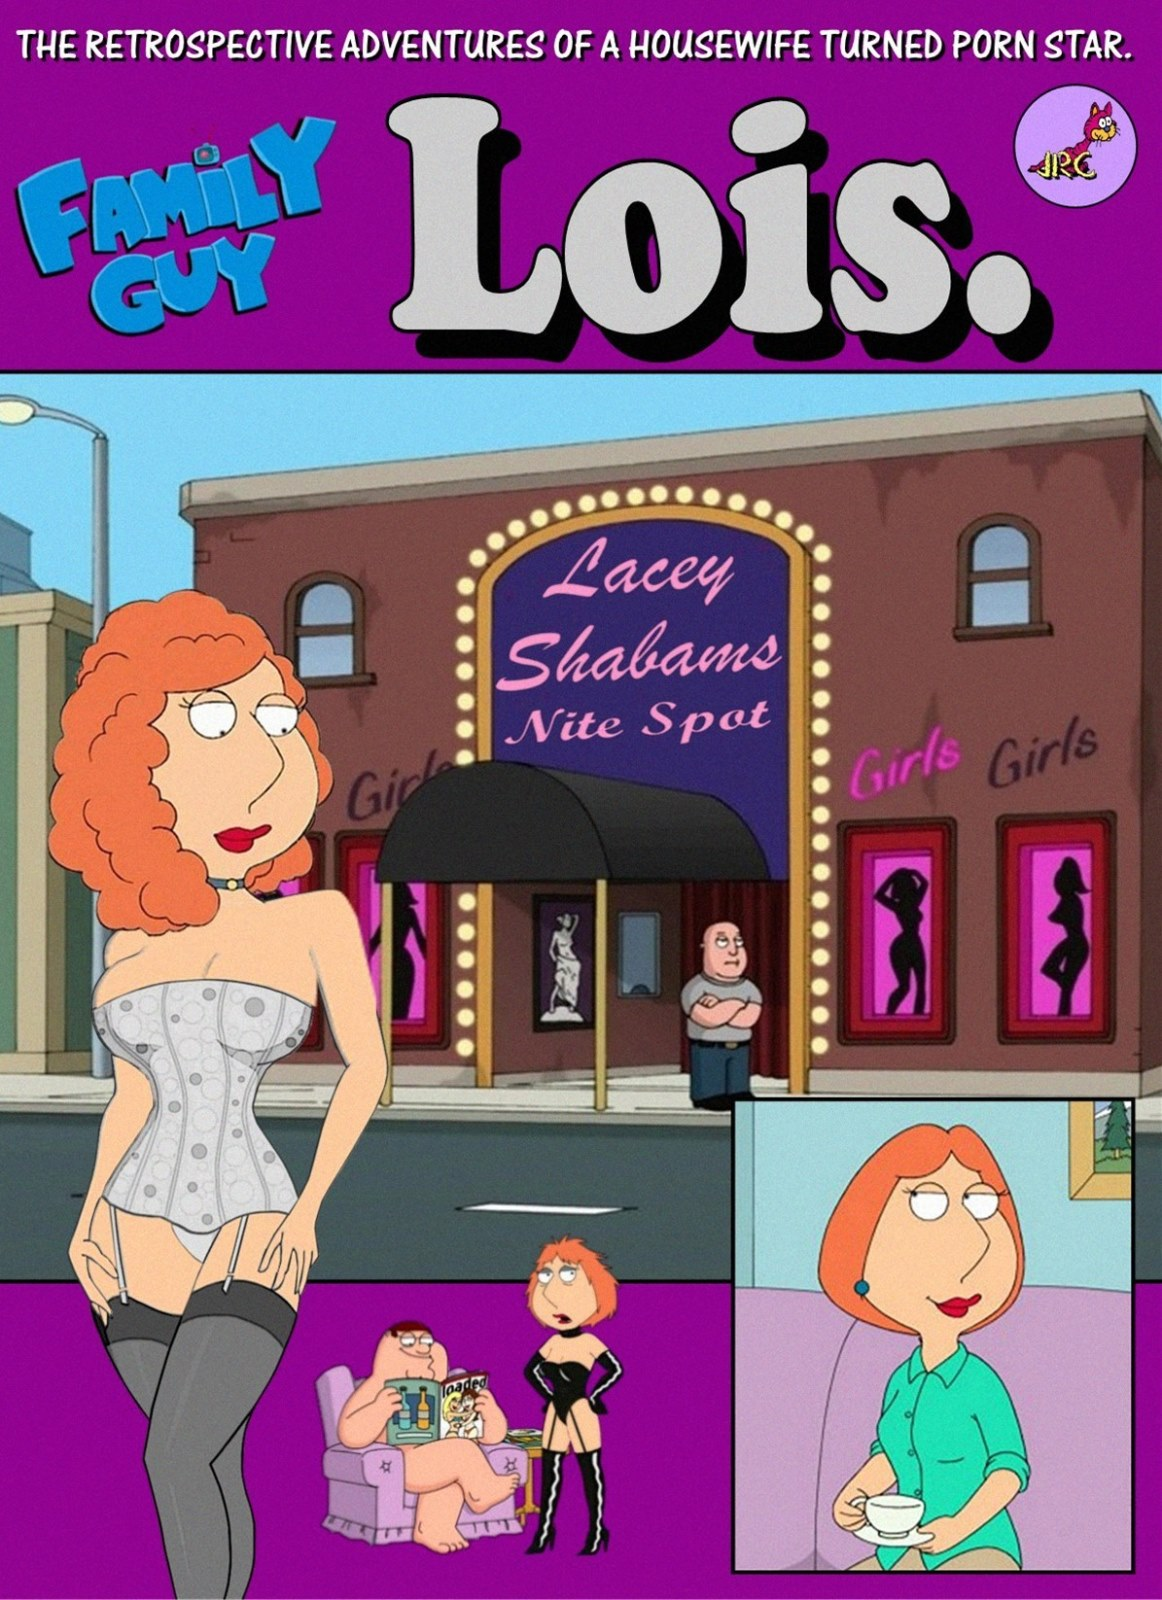 Porn Comics - Family Guy- Retrospective Adventures Of A Housewife porn comics 8 muses